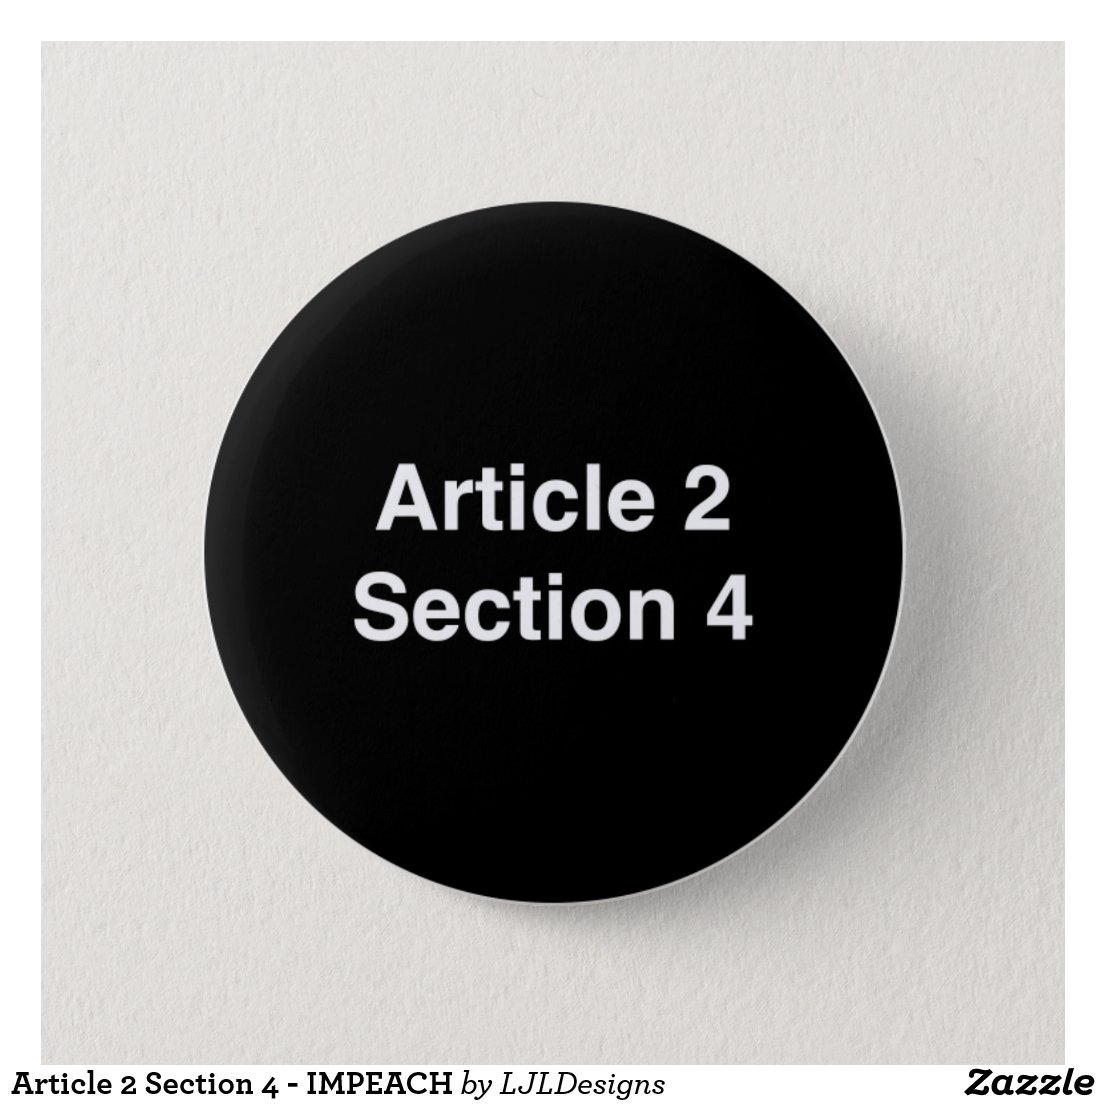 Article 2 Section 4 - IMPEACH Pinback Button